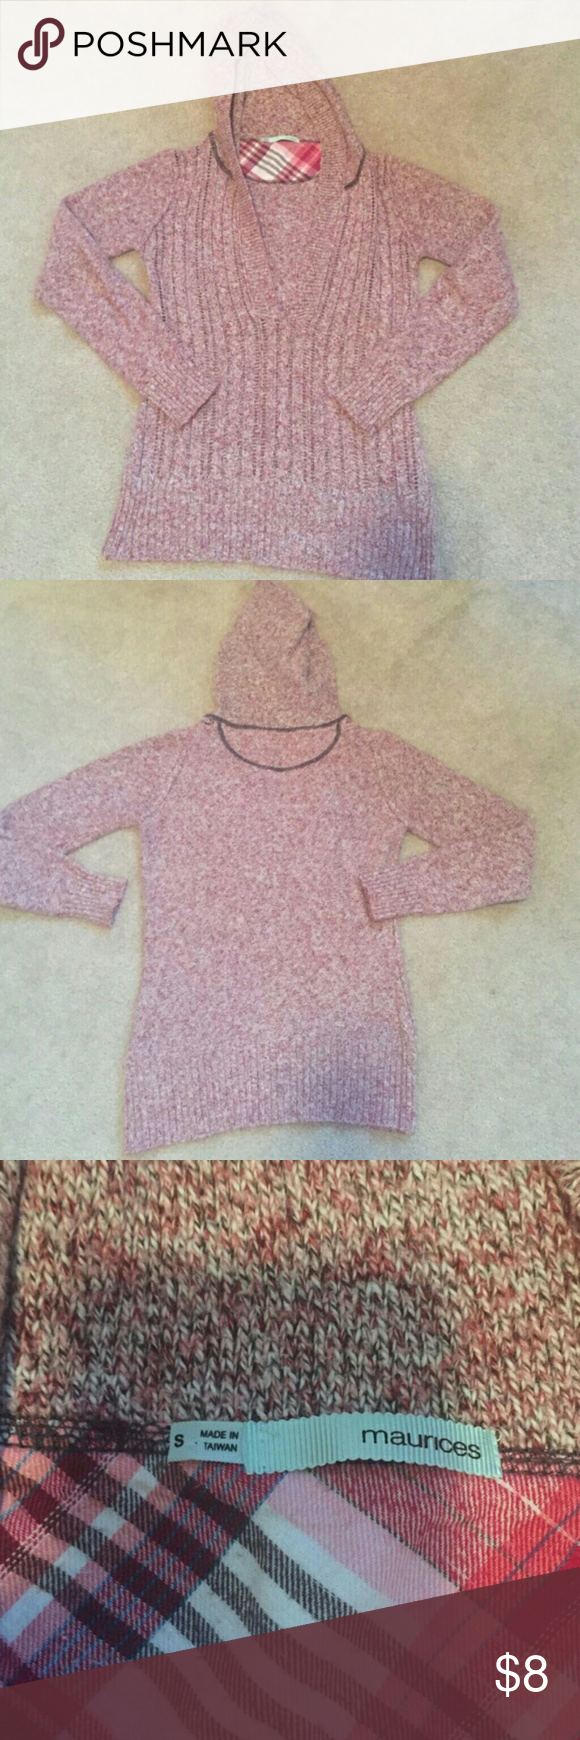 Maurice's V-neck hooded sweater Reposh!   EUC, super soft and light weight but warm // beautiful Heather pink color// the v-neck is just too low for my modesty level even with a cami Maurices Sweaters